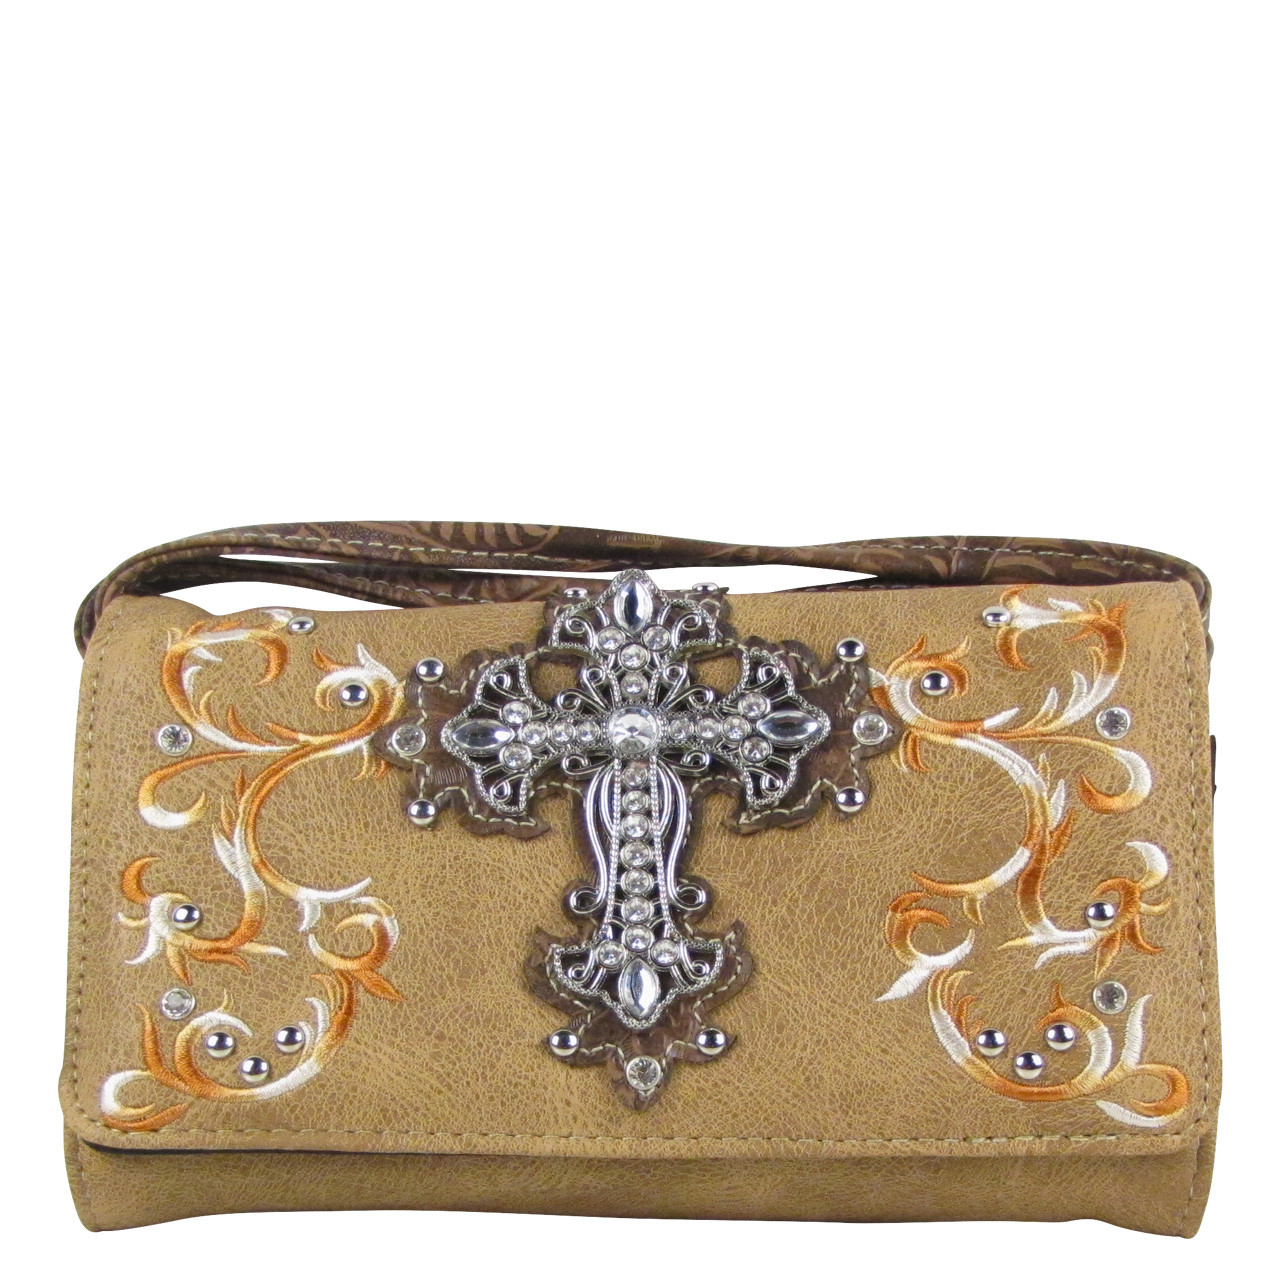 BROWN RHINESTONE CROSS LOOK CLUTCH TRIFOLD WALLET CW1-0472BRN